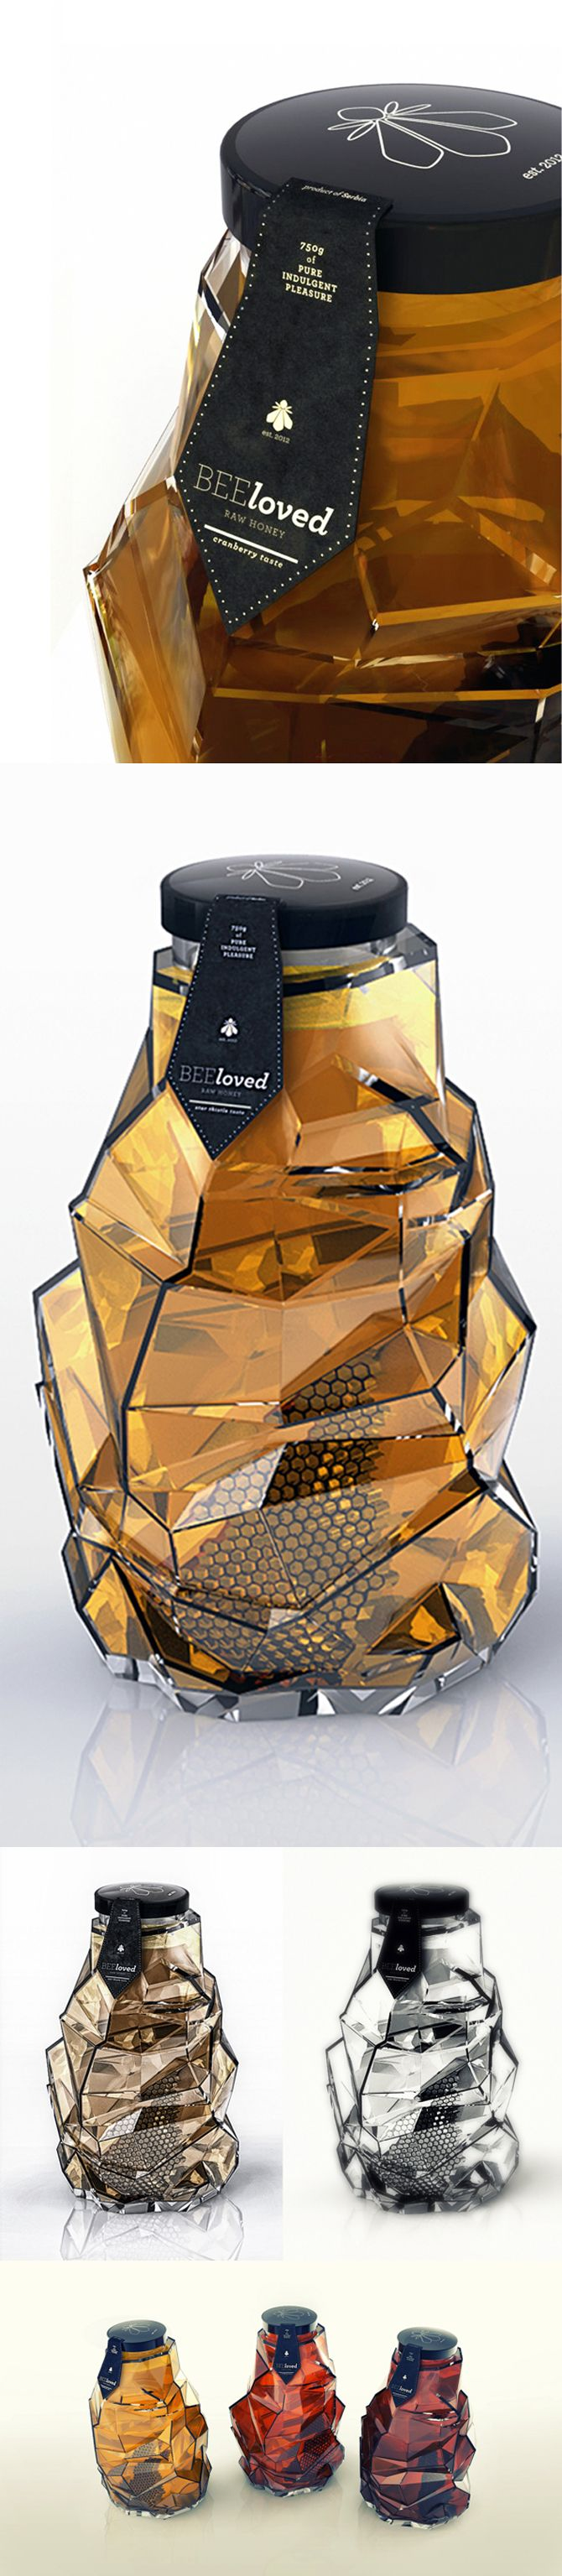 Honey Packaging by Tamara Mihajlovic